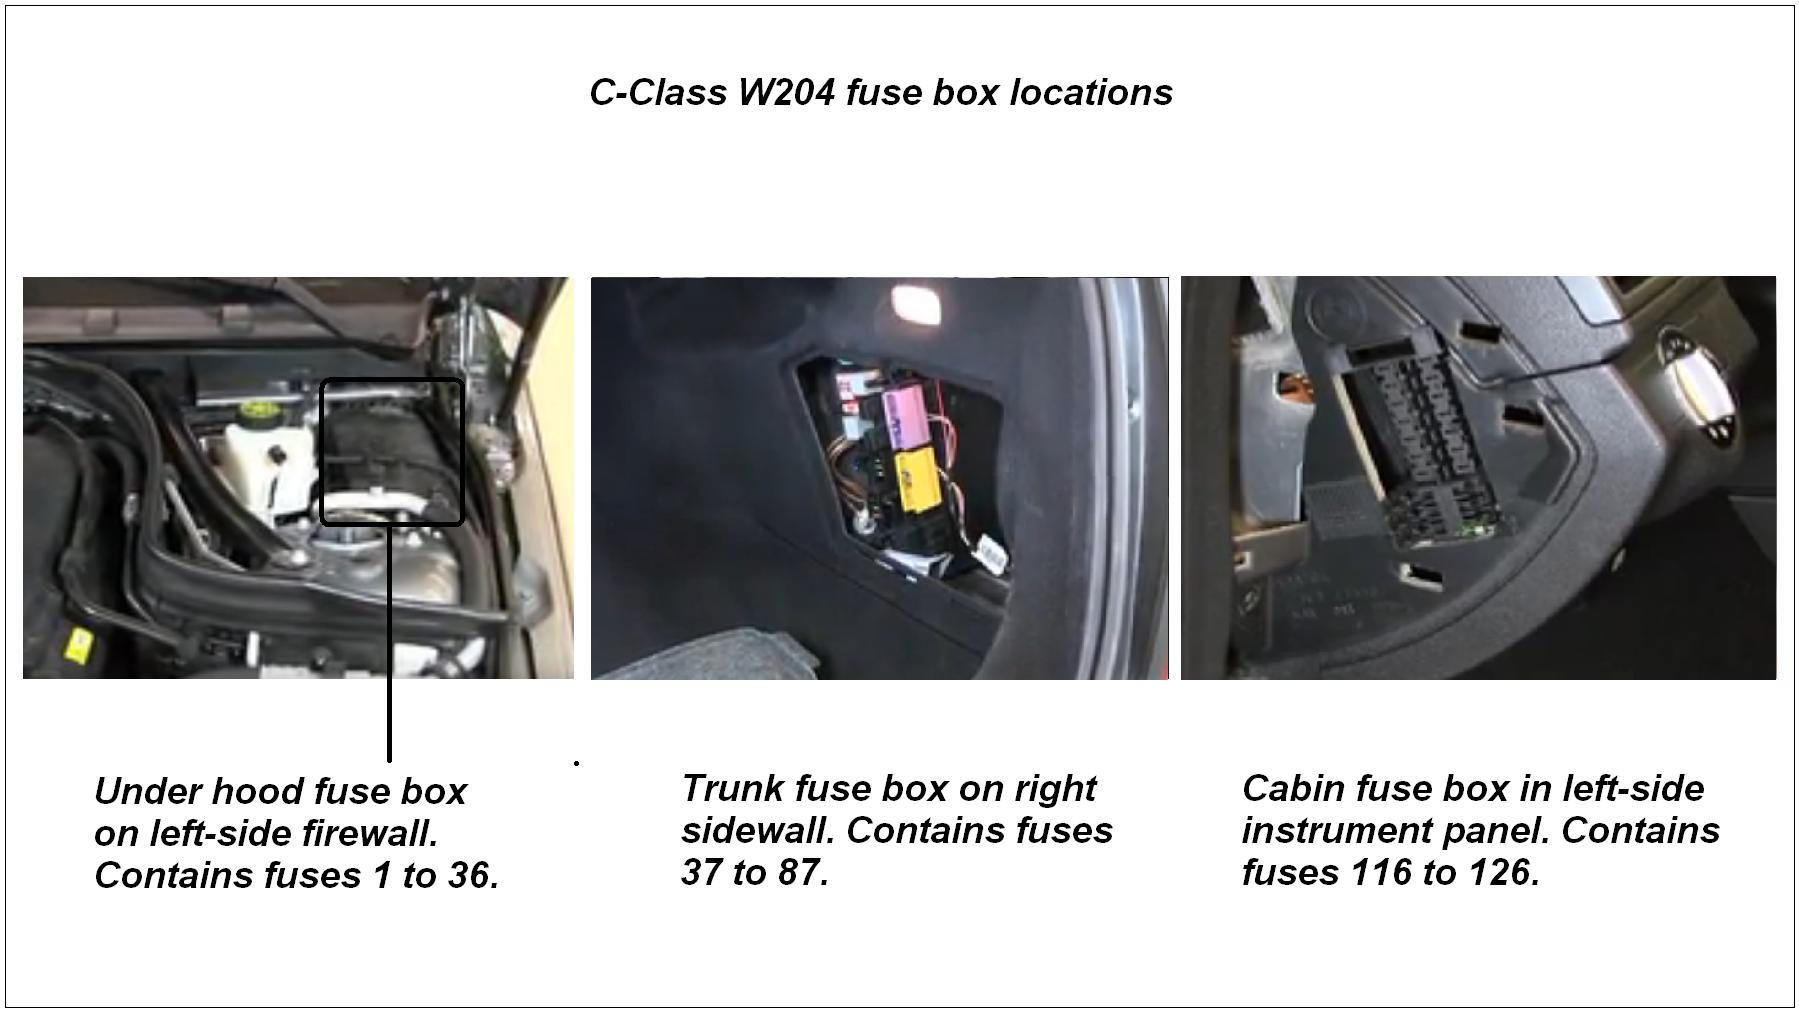 hight resolution of location of w204 fuse boxes